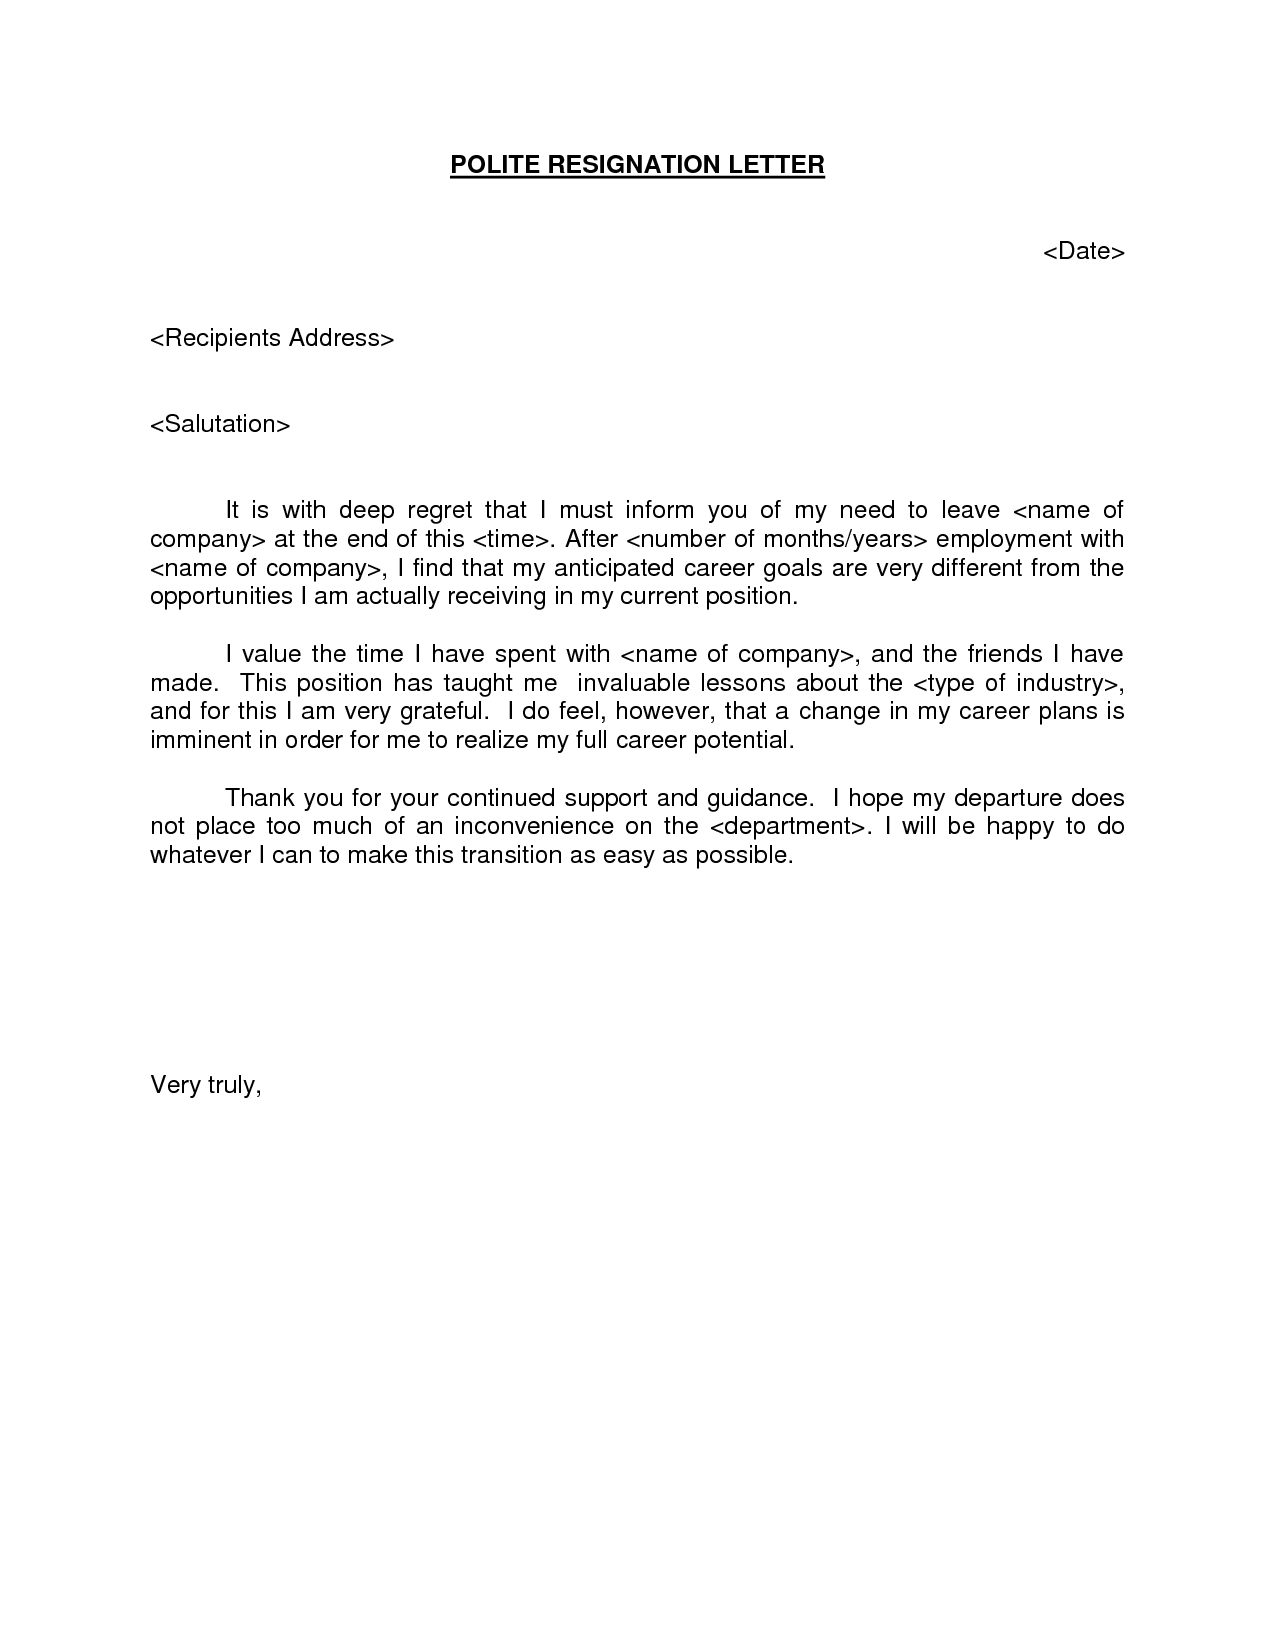 POLITE RESIGNATION LETTER BestdealformoneyWriting A Letter Of Resignation Email Sample